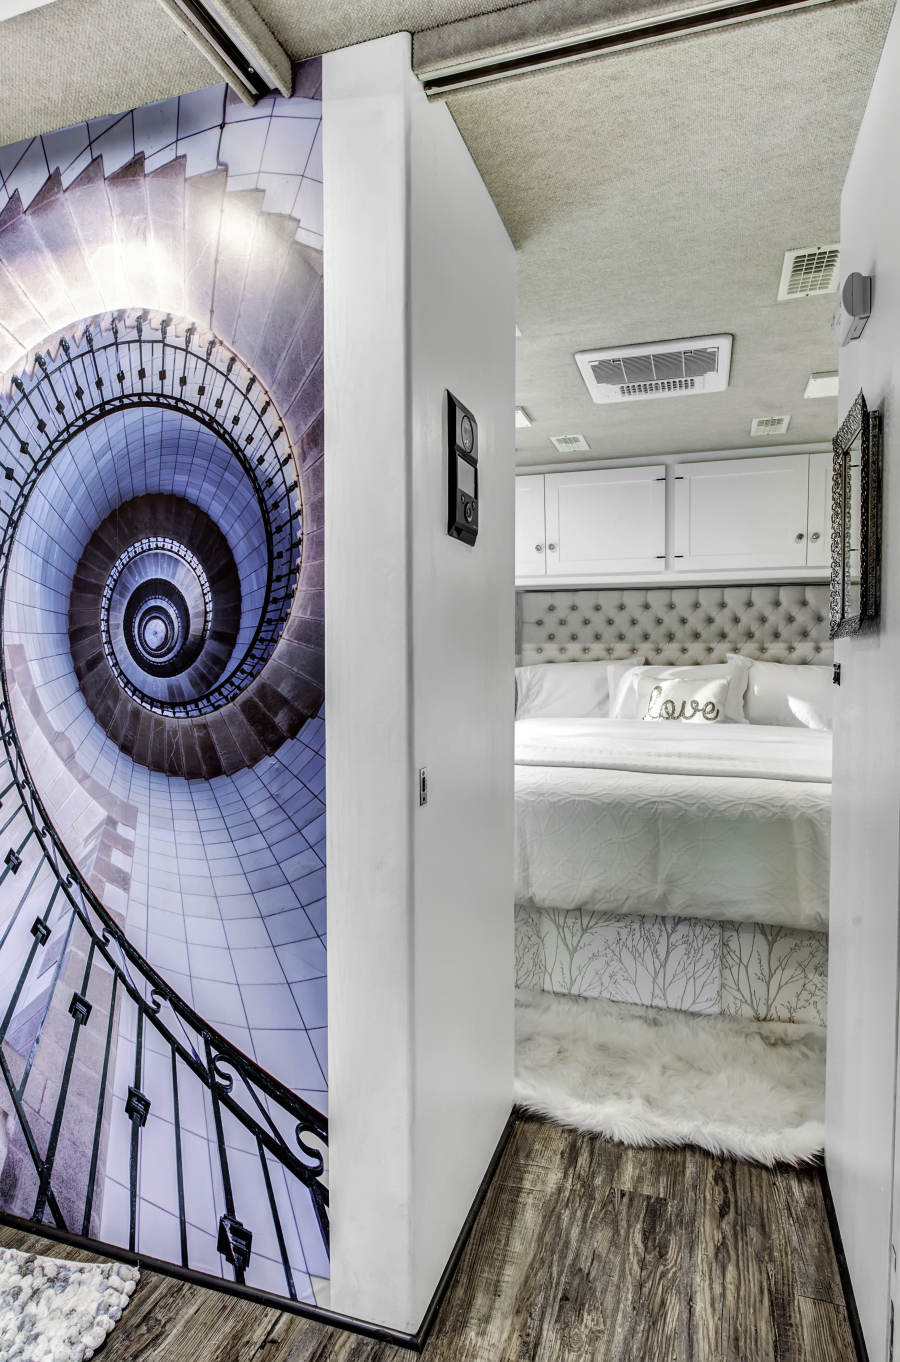 contemporary RV interior with wall mural